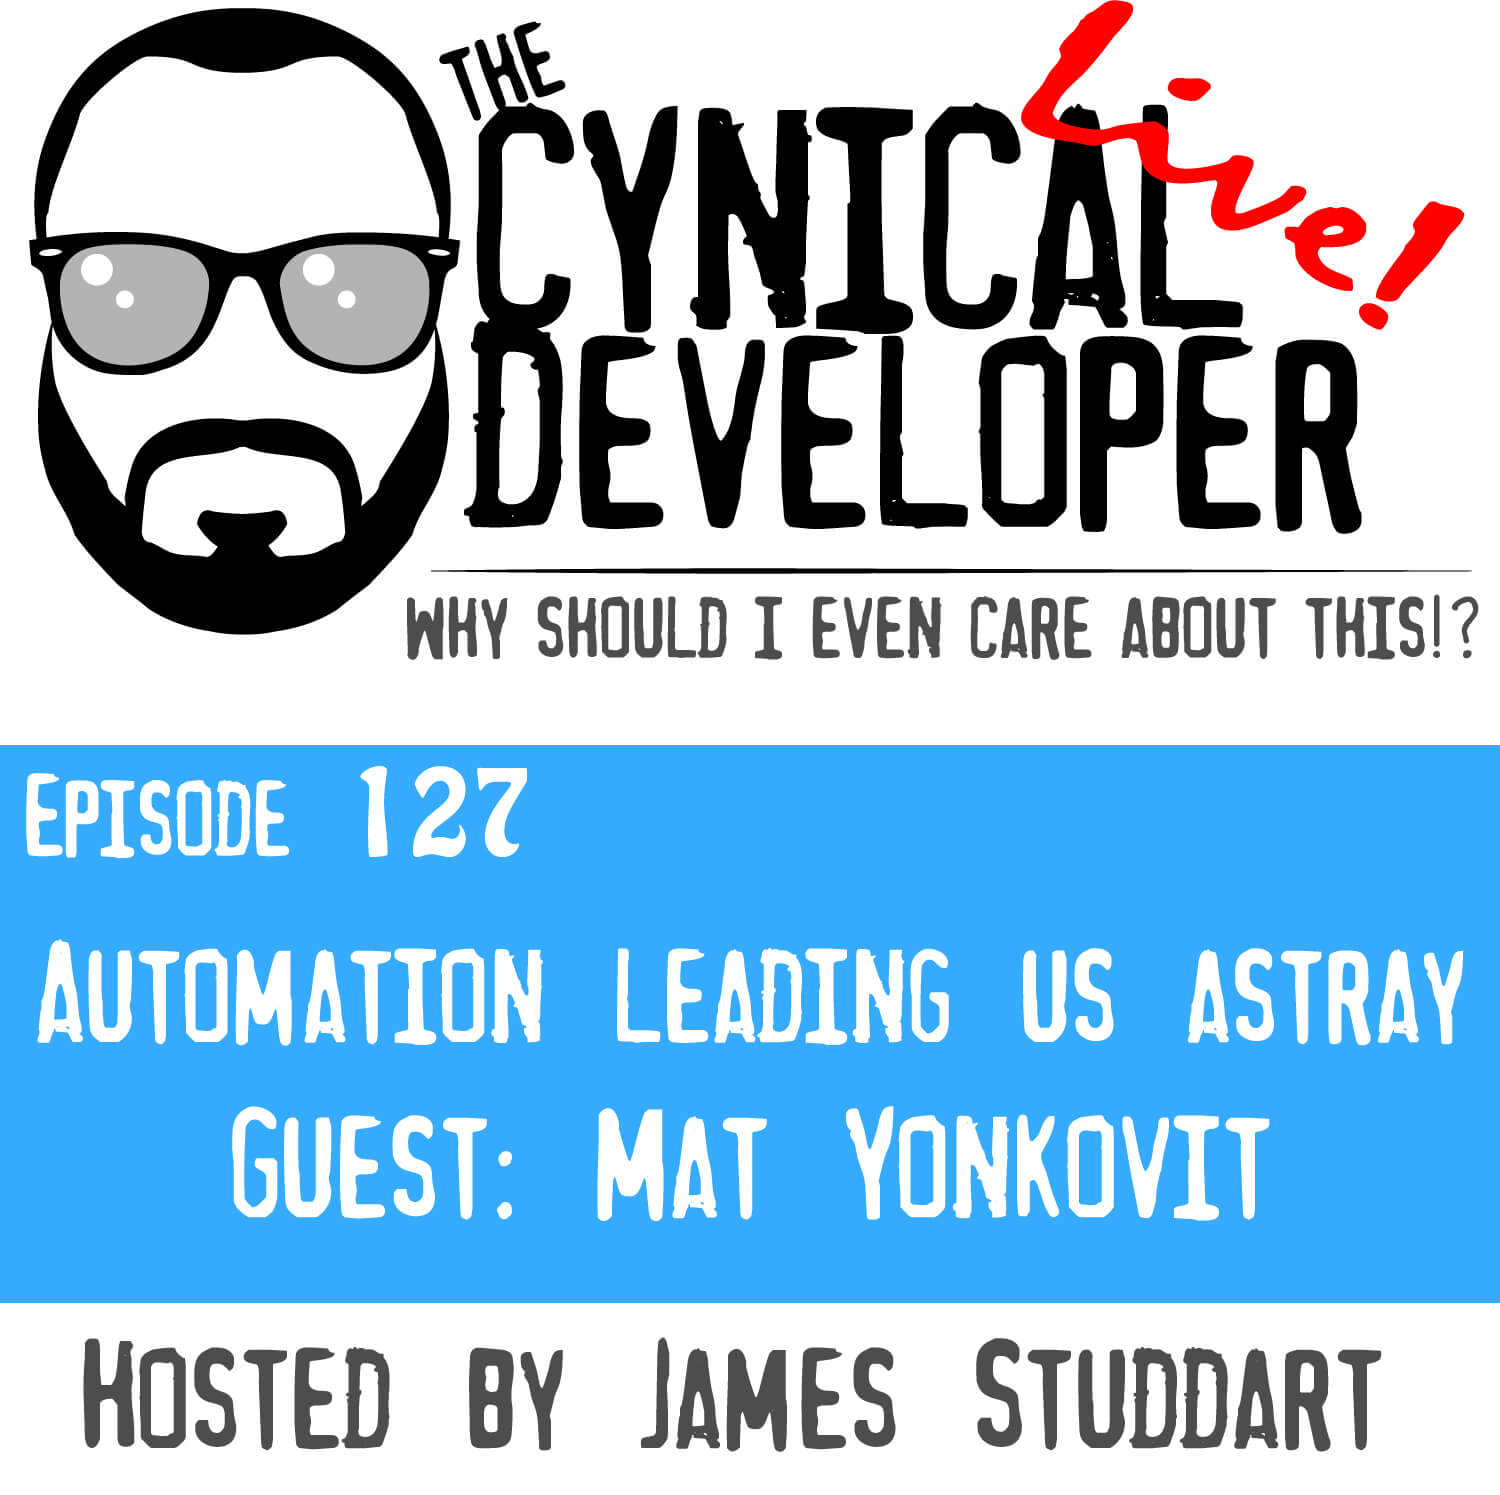 Episode 127 - Automation leading us astray - Percona Live Europe 2019